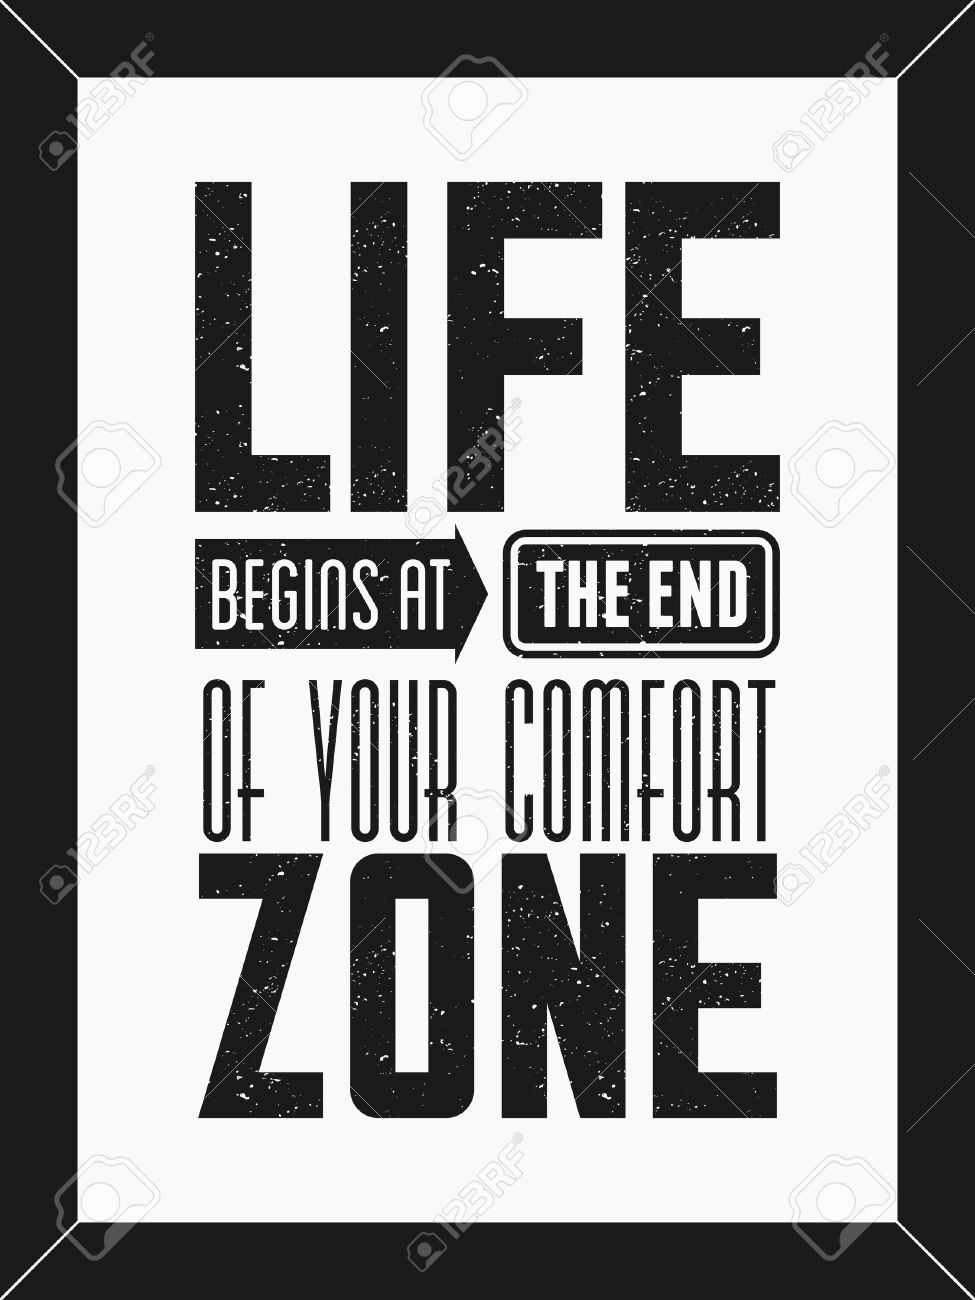 Poster design monochrome - Inspirational Text Design Minimalist Poster In Black And White Life Begins At The End Of